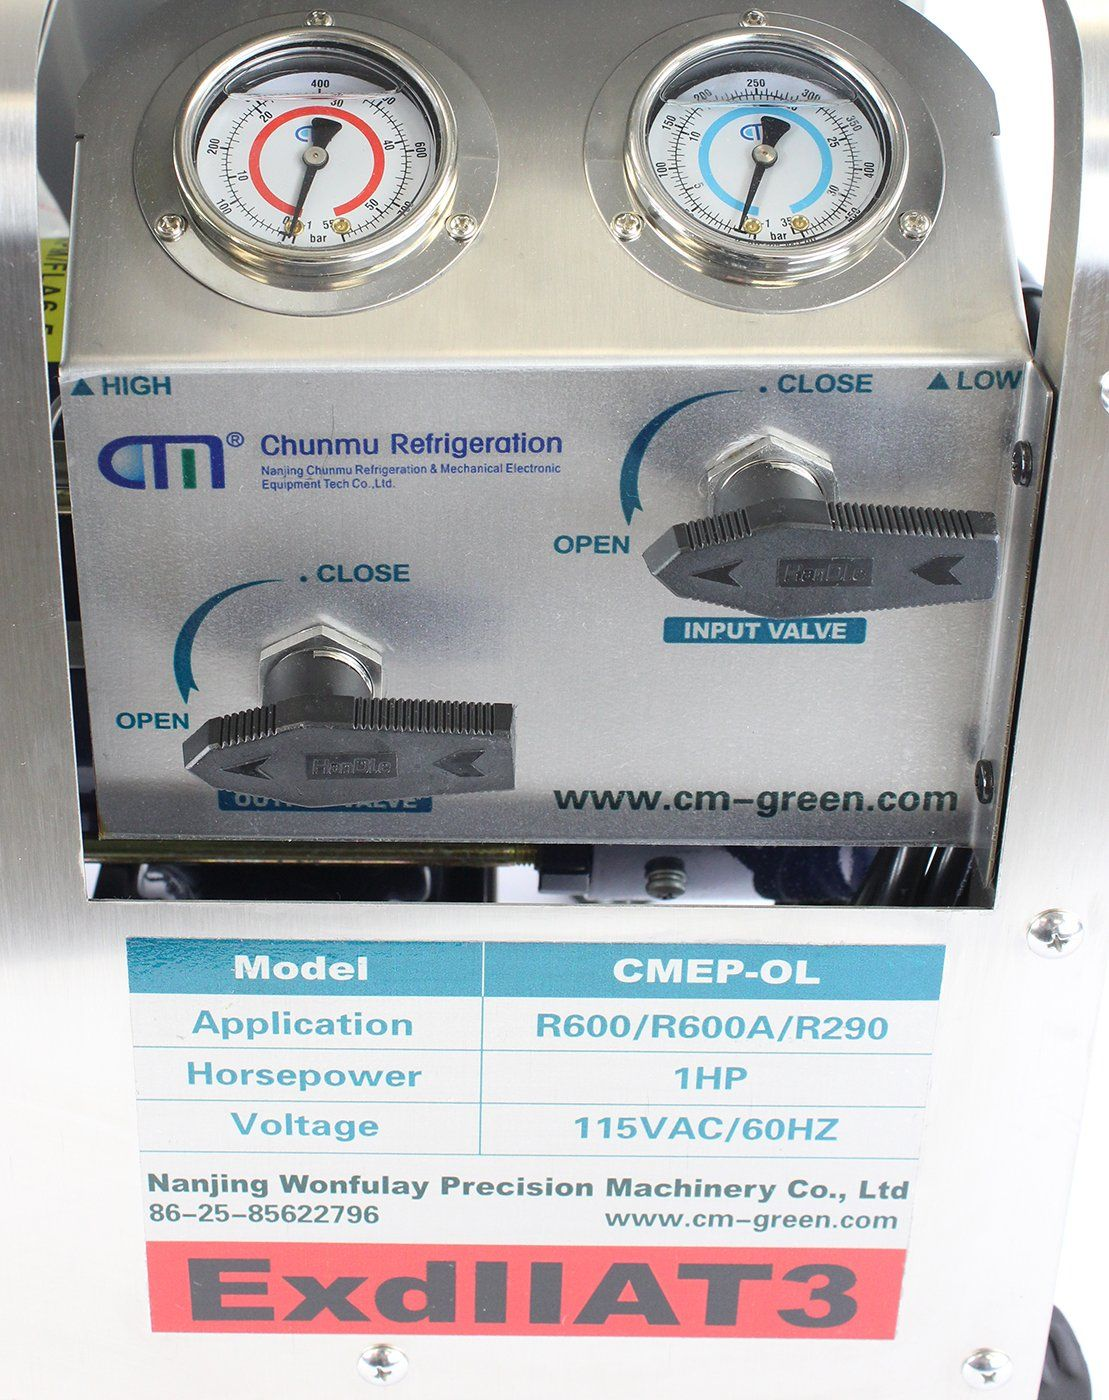 CMEP-OL Gen 2 Oil-less Explosion Proof Recovery Pump